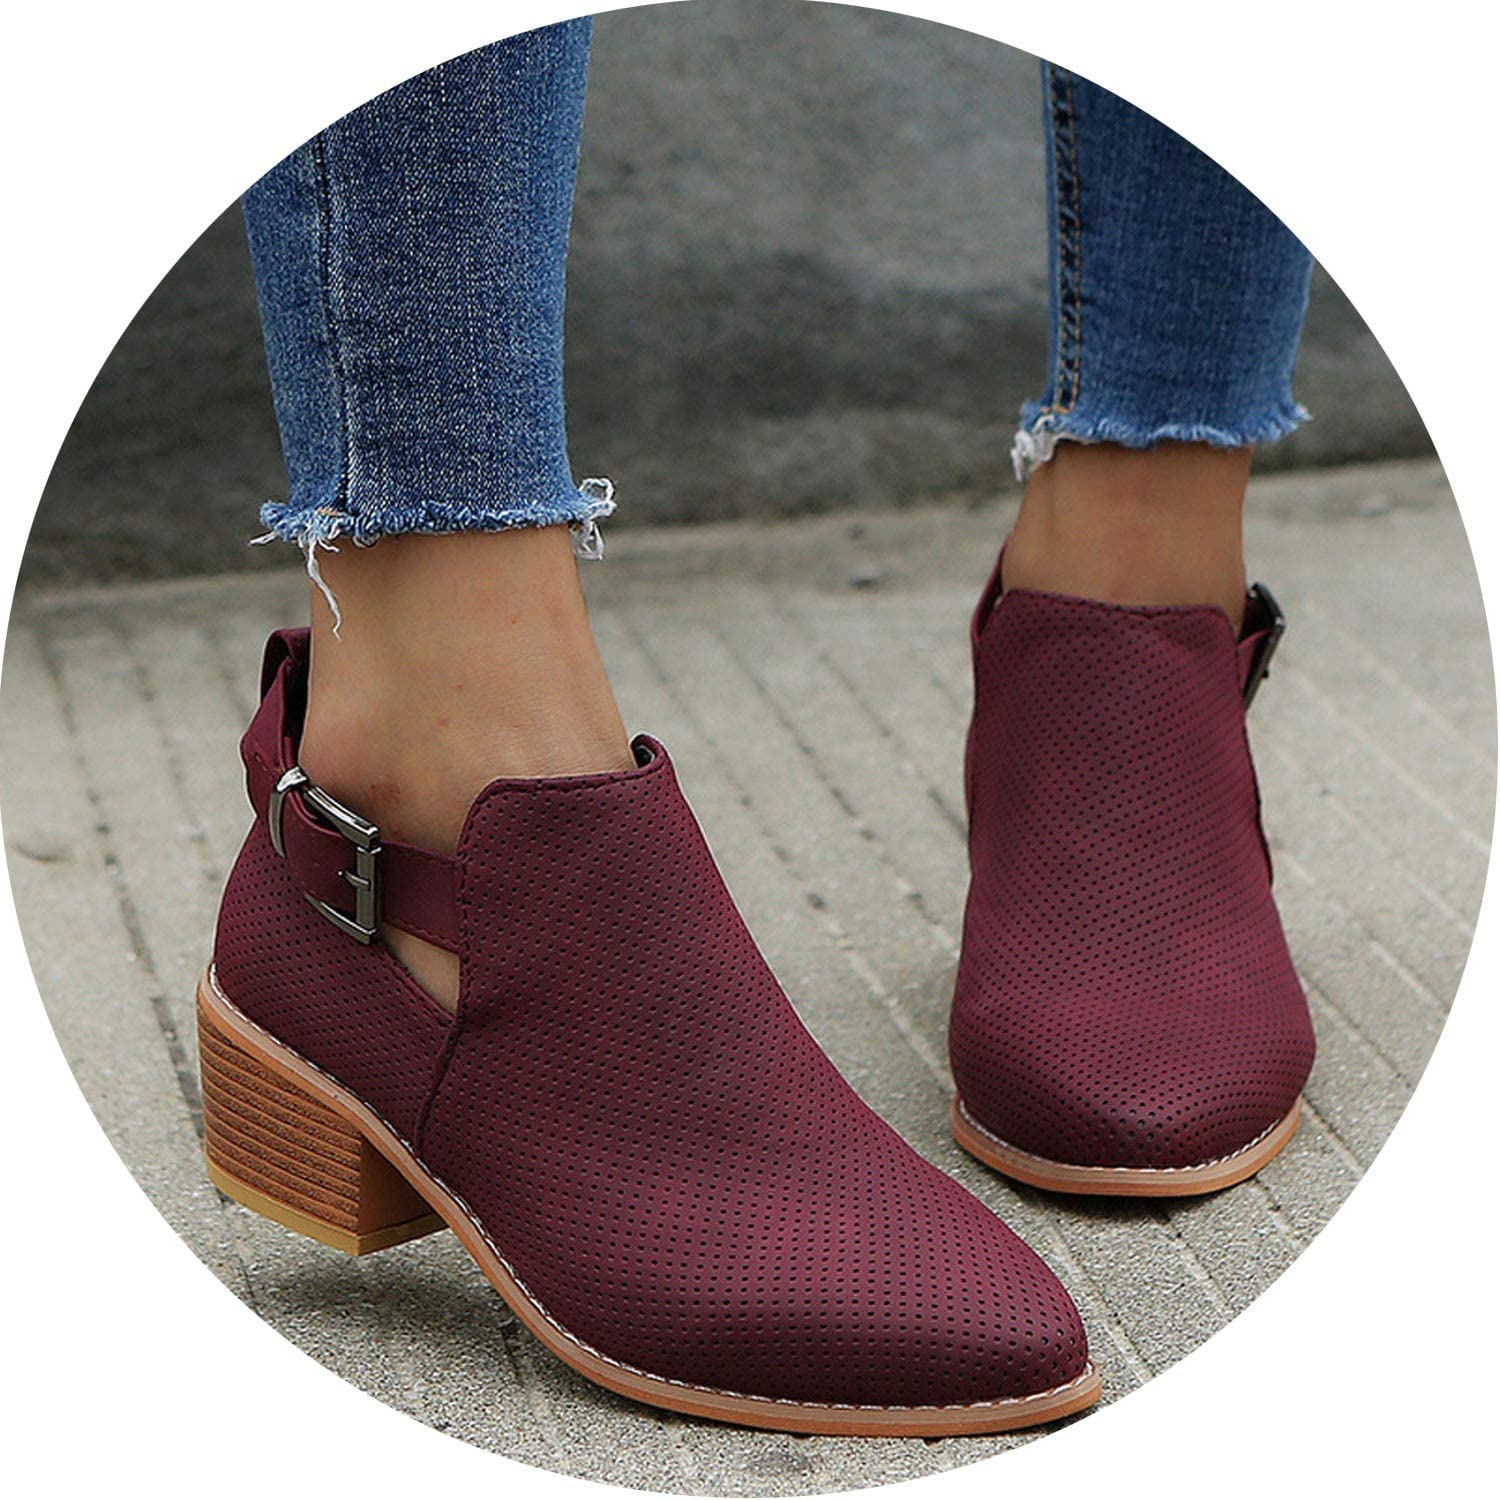 Crazy-Shop Winter Boots Women Out Ankle Boots for Women Pointed Toe Square Heel Ladies shoes Bota